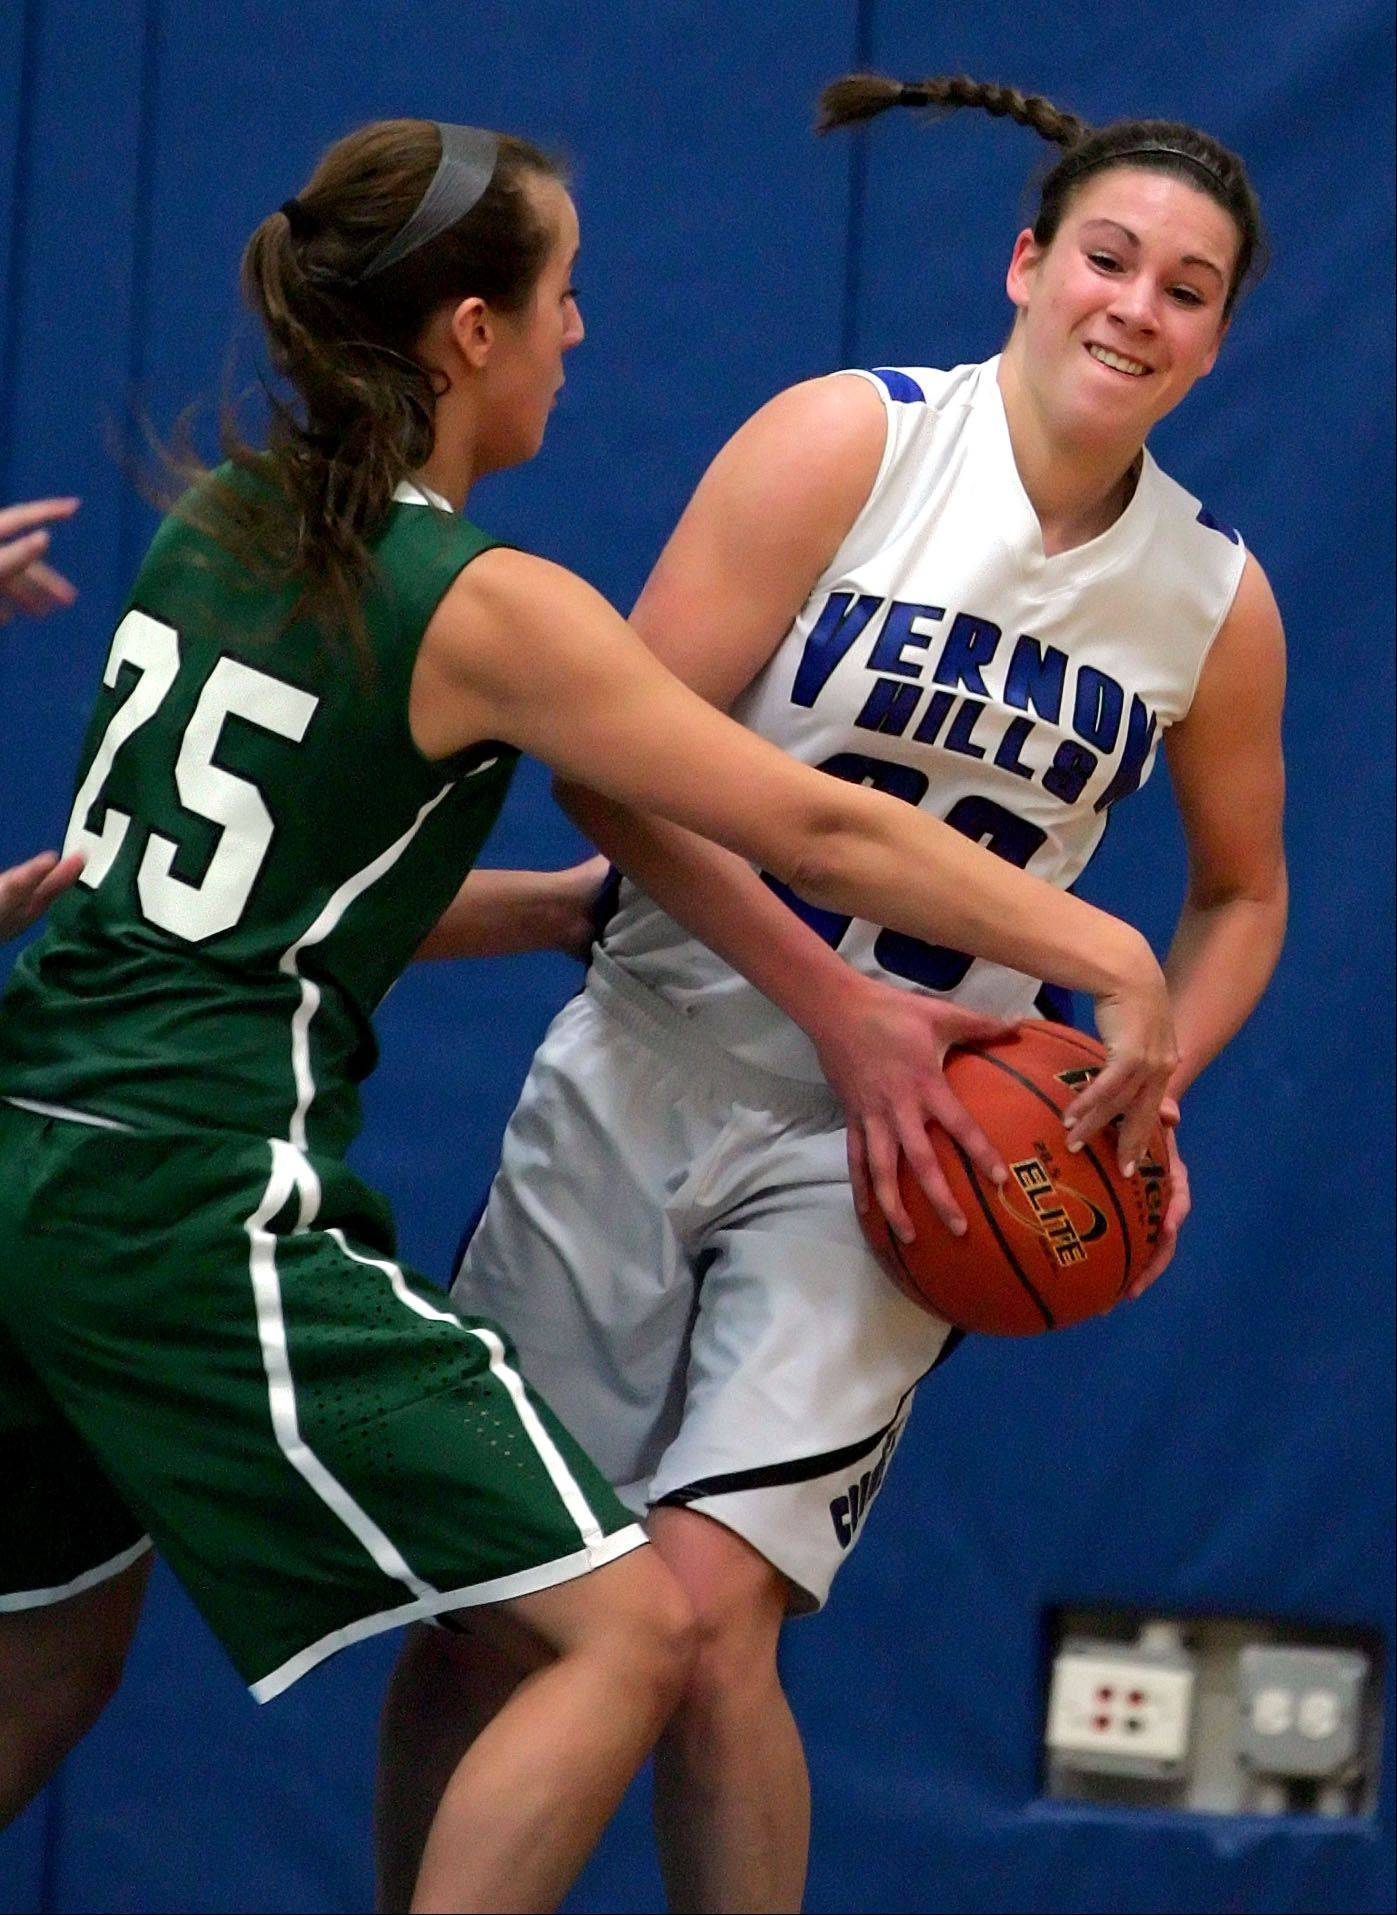 Vernon Hills' Brie Bahlmann, right, looks to pass as Grayslake Central's Taylor Peterson defends .